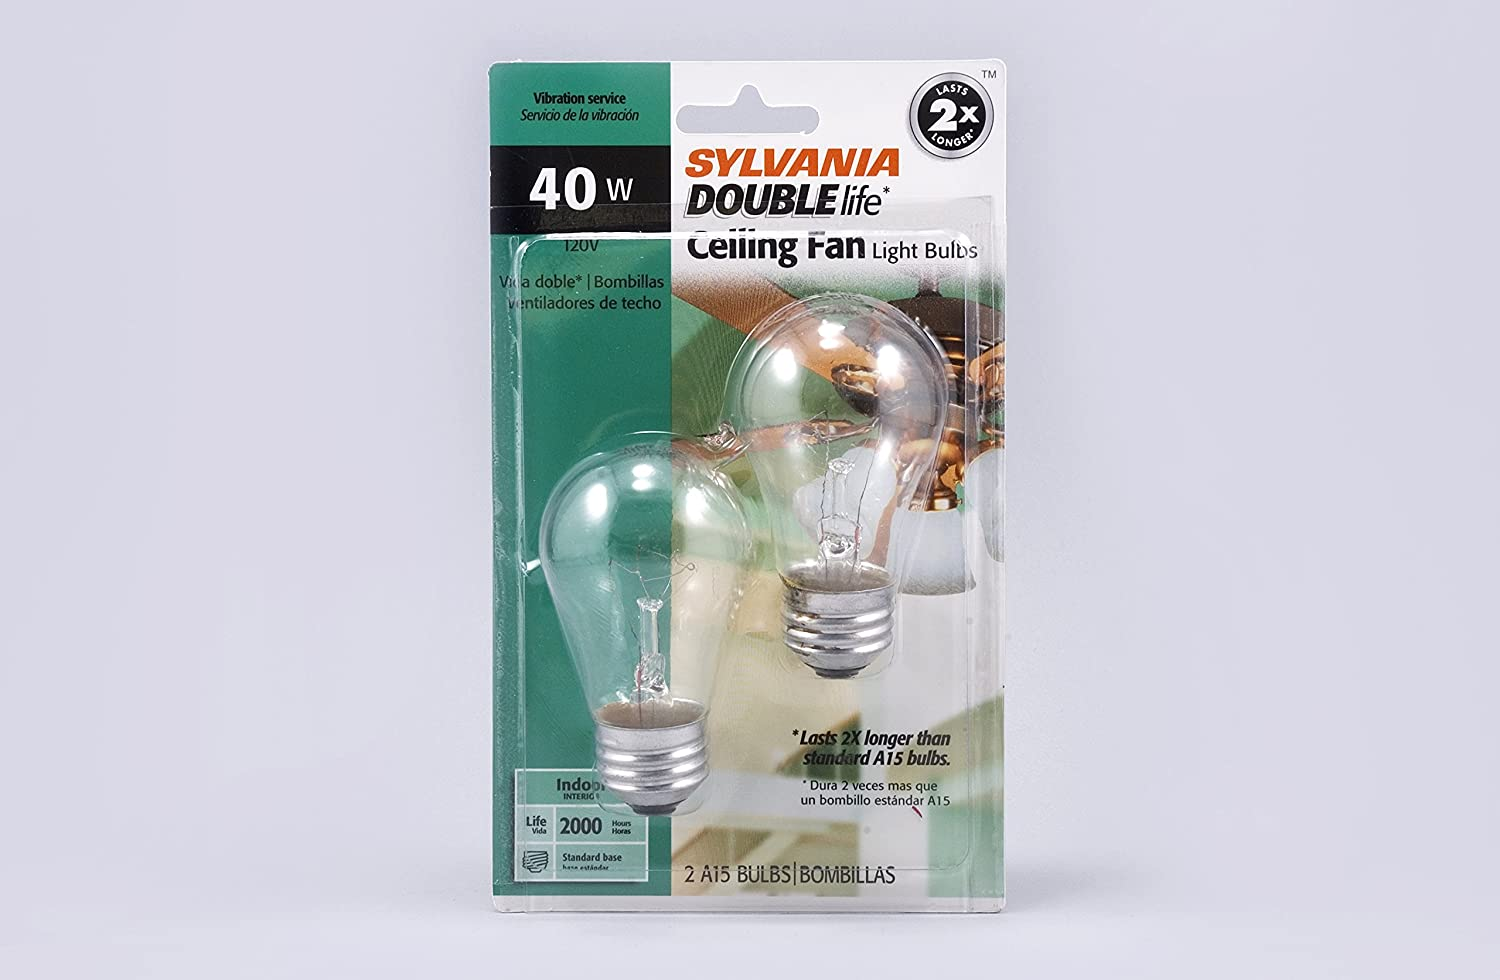 SYLVANIA Home Lighting 10034 Incandescnet Bulb, A15-40W, Double Life, Clear Finish, Medium Base, Pack of 2 - - Amazon.com